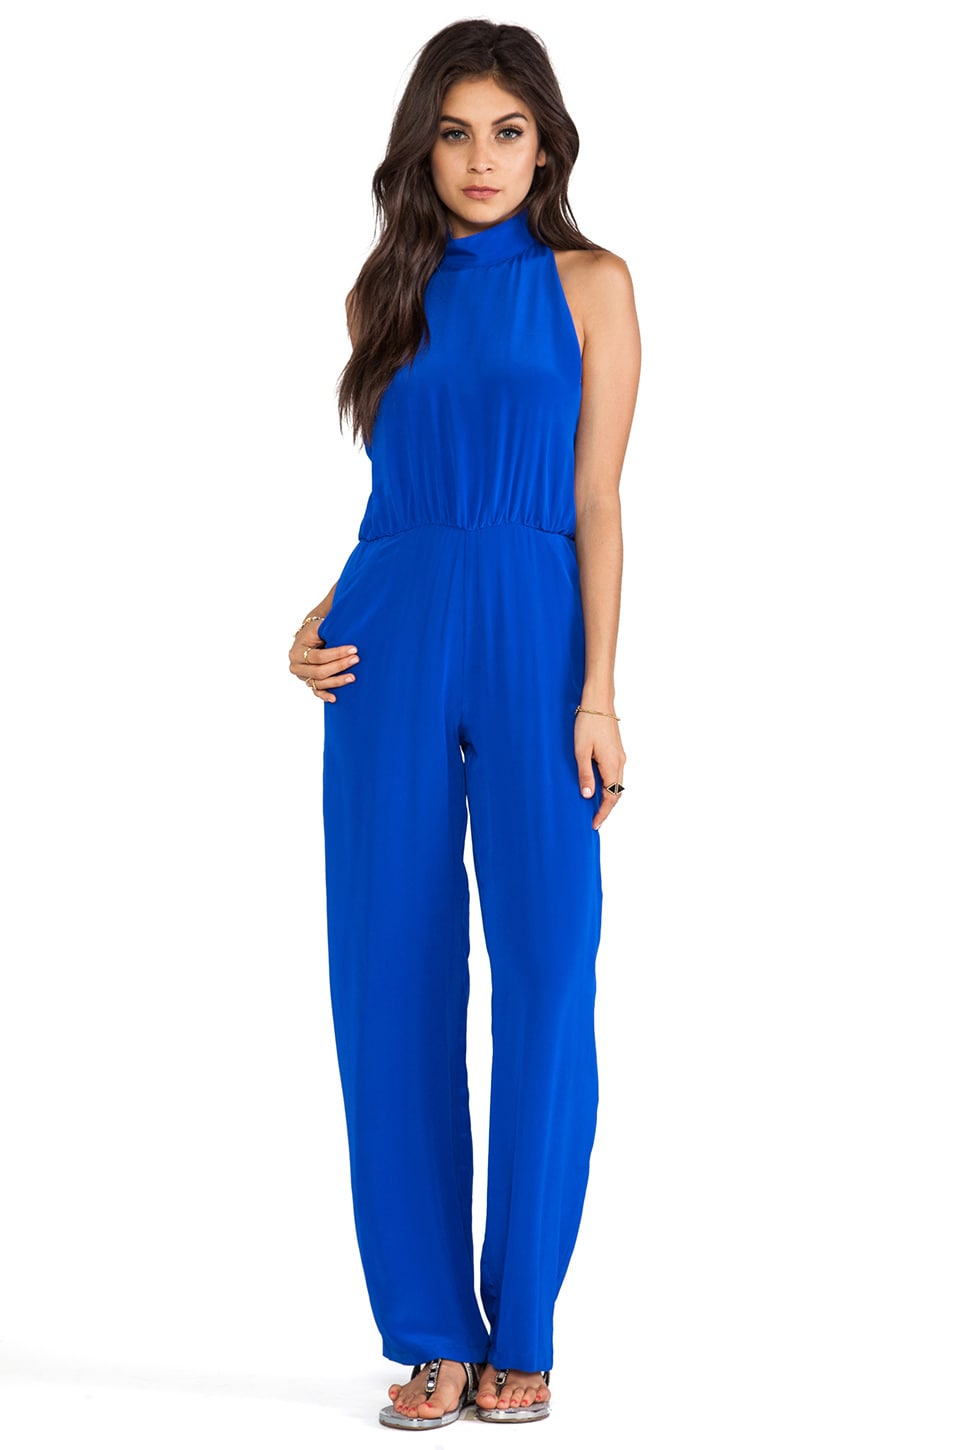 Assali Augusta Jumpsuit in Cobalt Blue